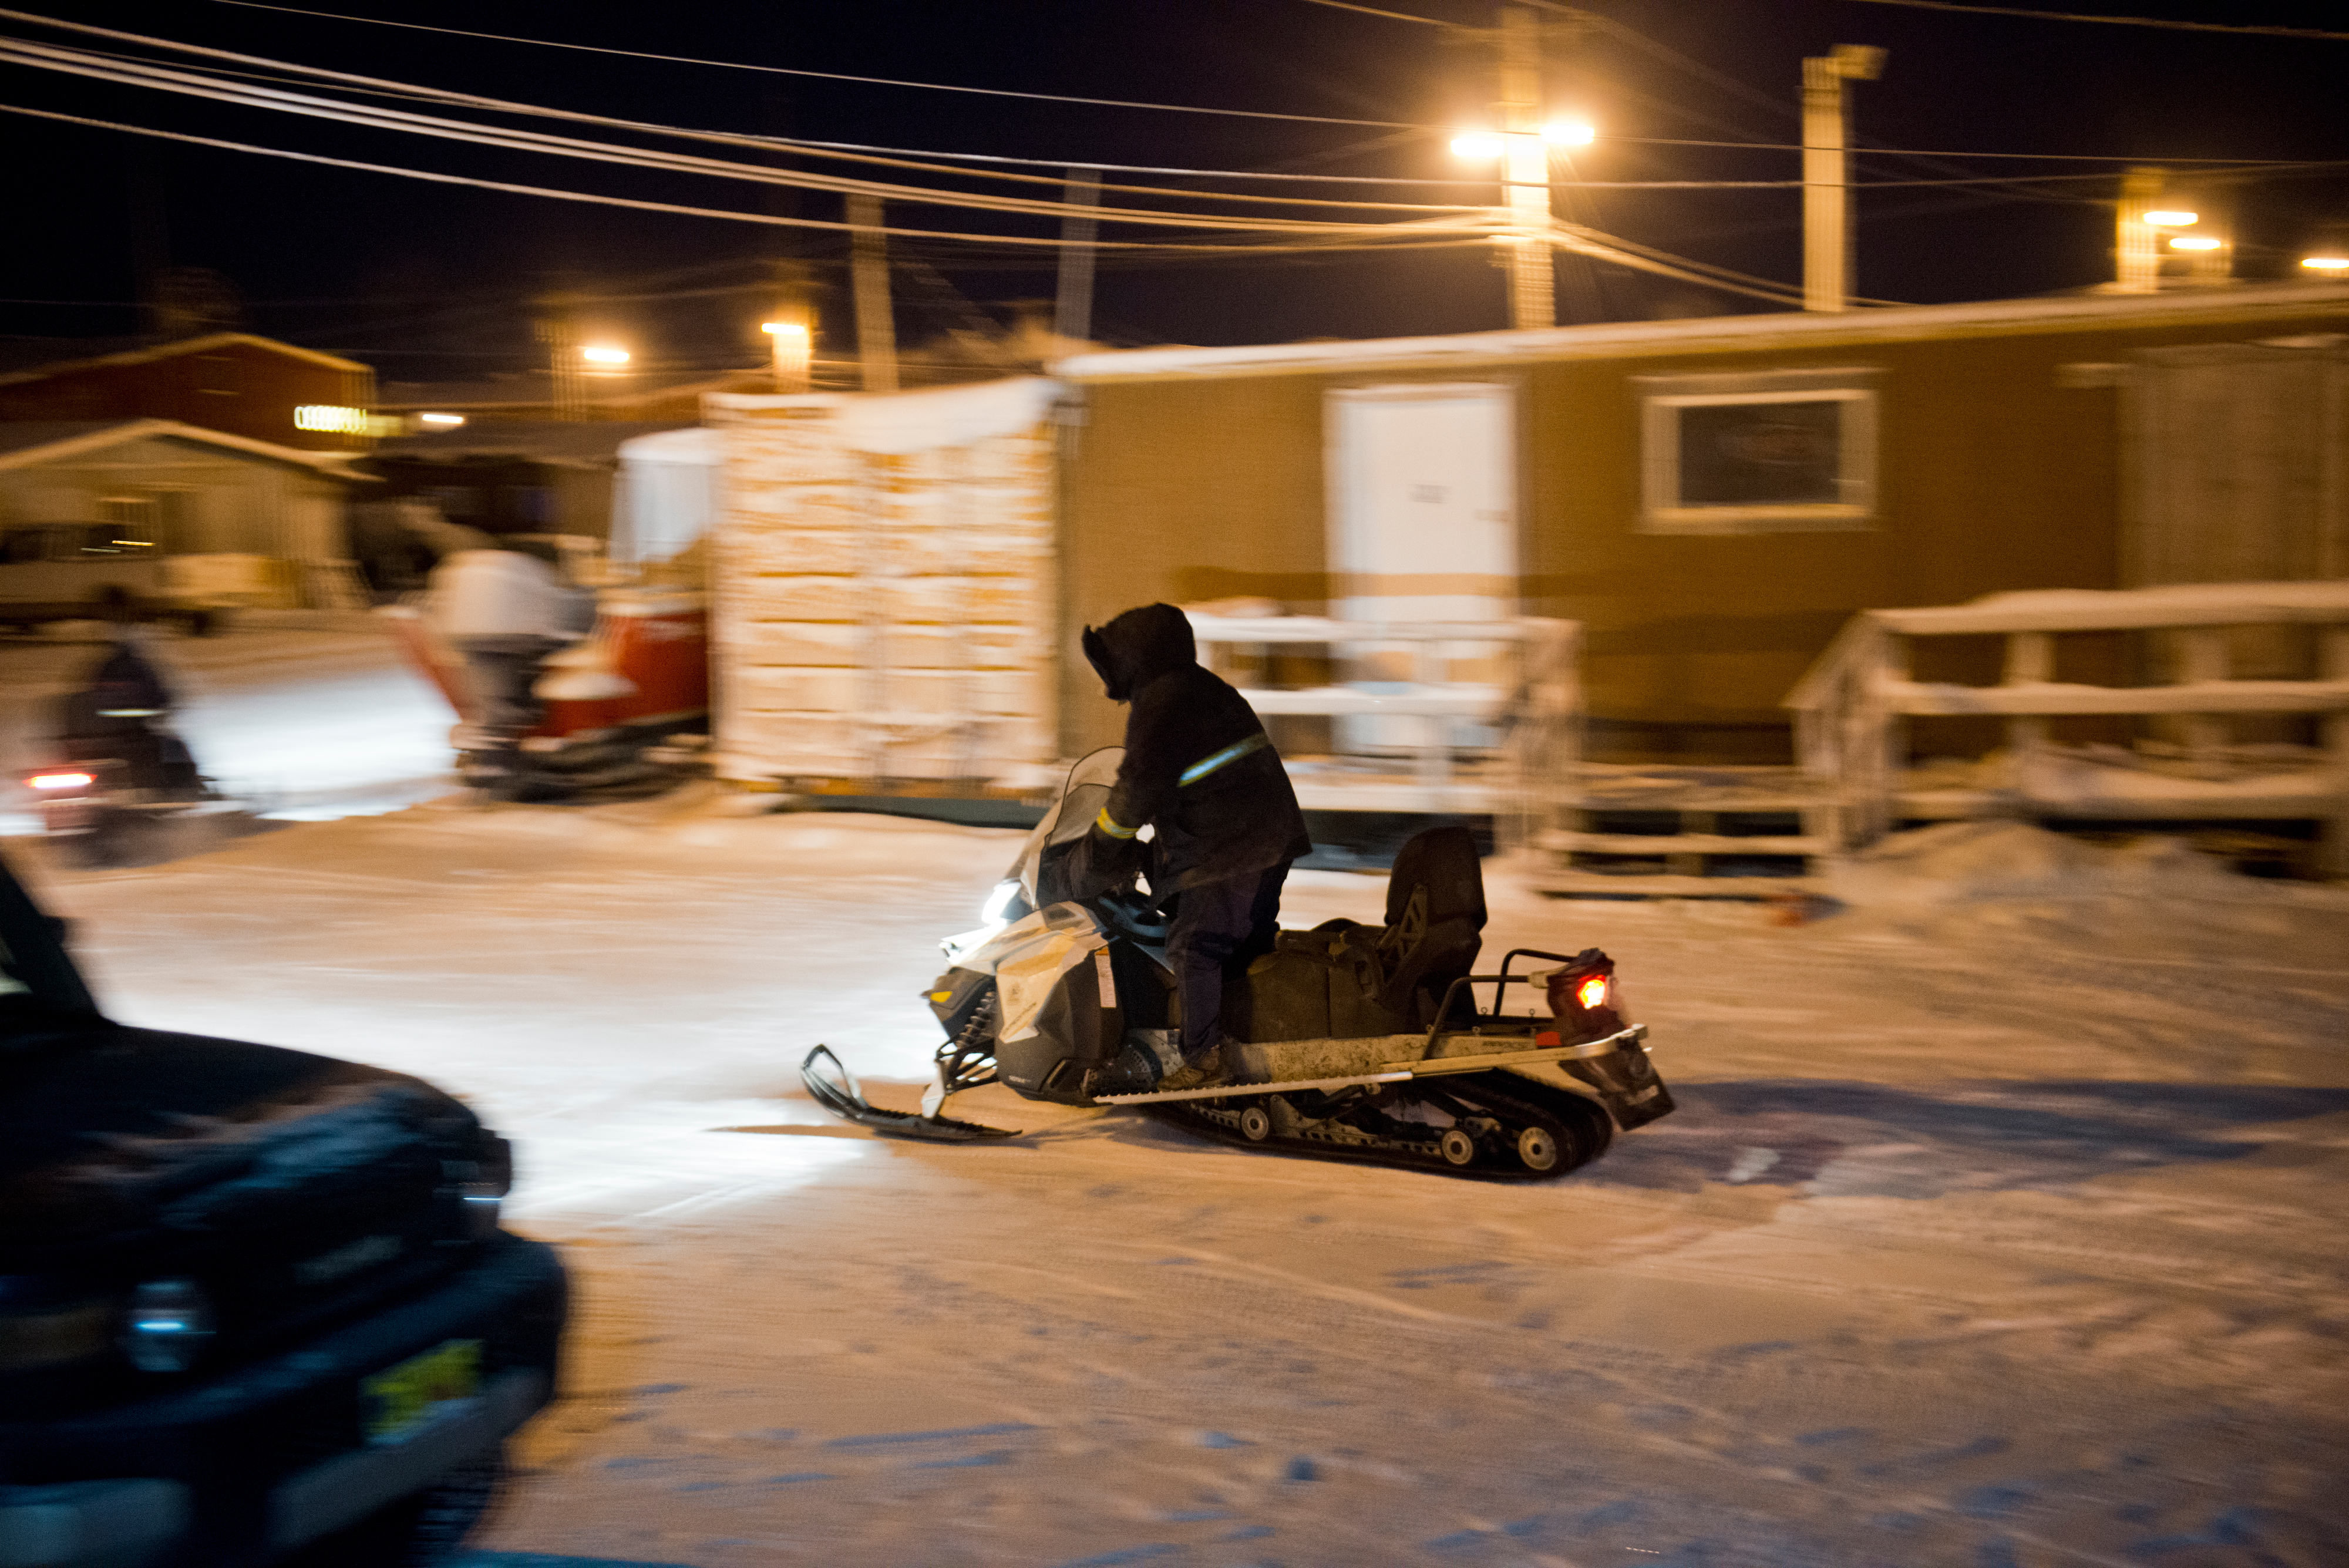 Patrick Brower departs the Barrow Searc and Rescue headquarters to assist a group of four people whose snow machines broke down while on a hunting trip. Barrow Search and Rescue volunteer Steven Leavitt said that most rescues happen within the